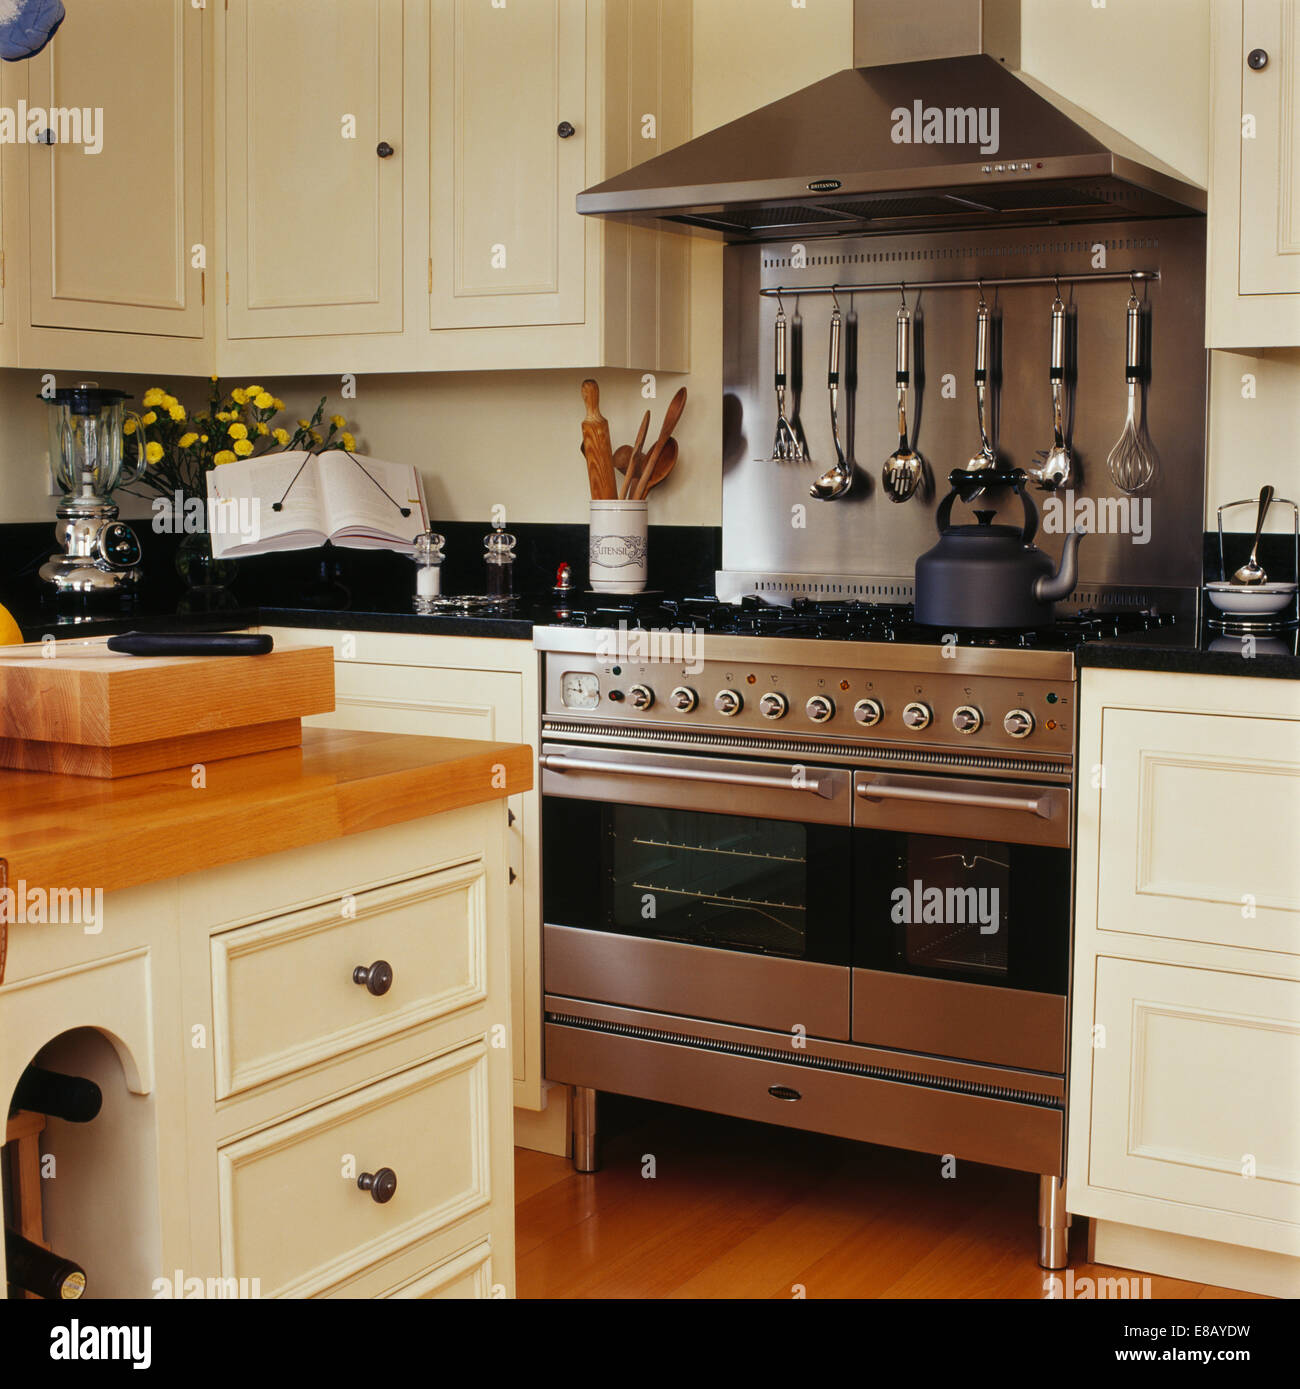 Stainless-steel range oven and splash-back in country kitchen with cream  painted units